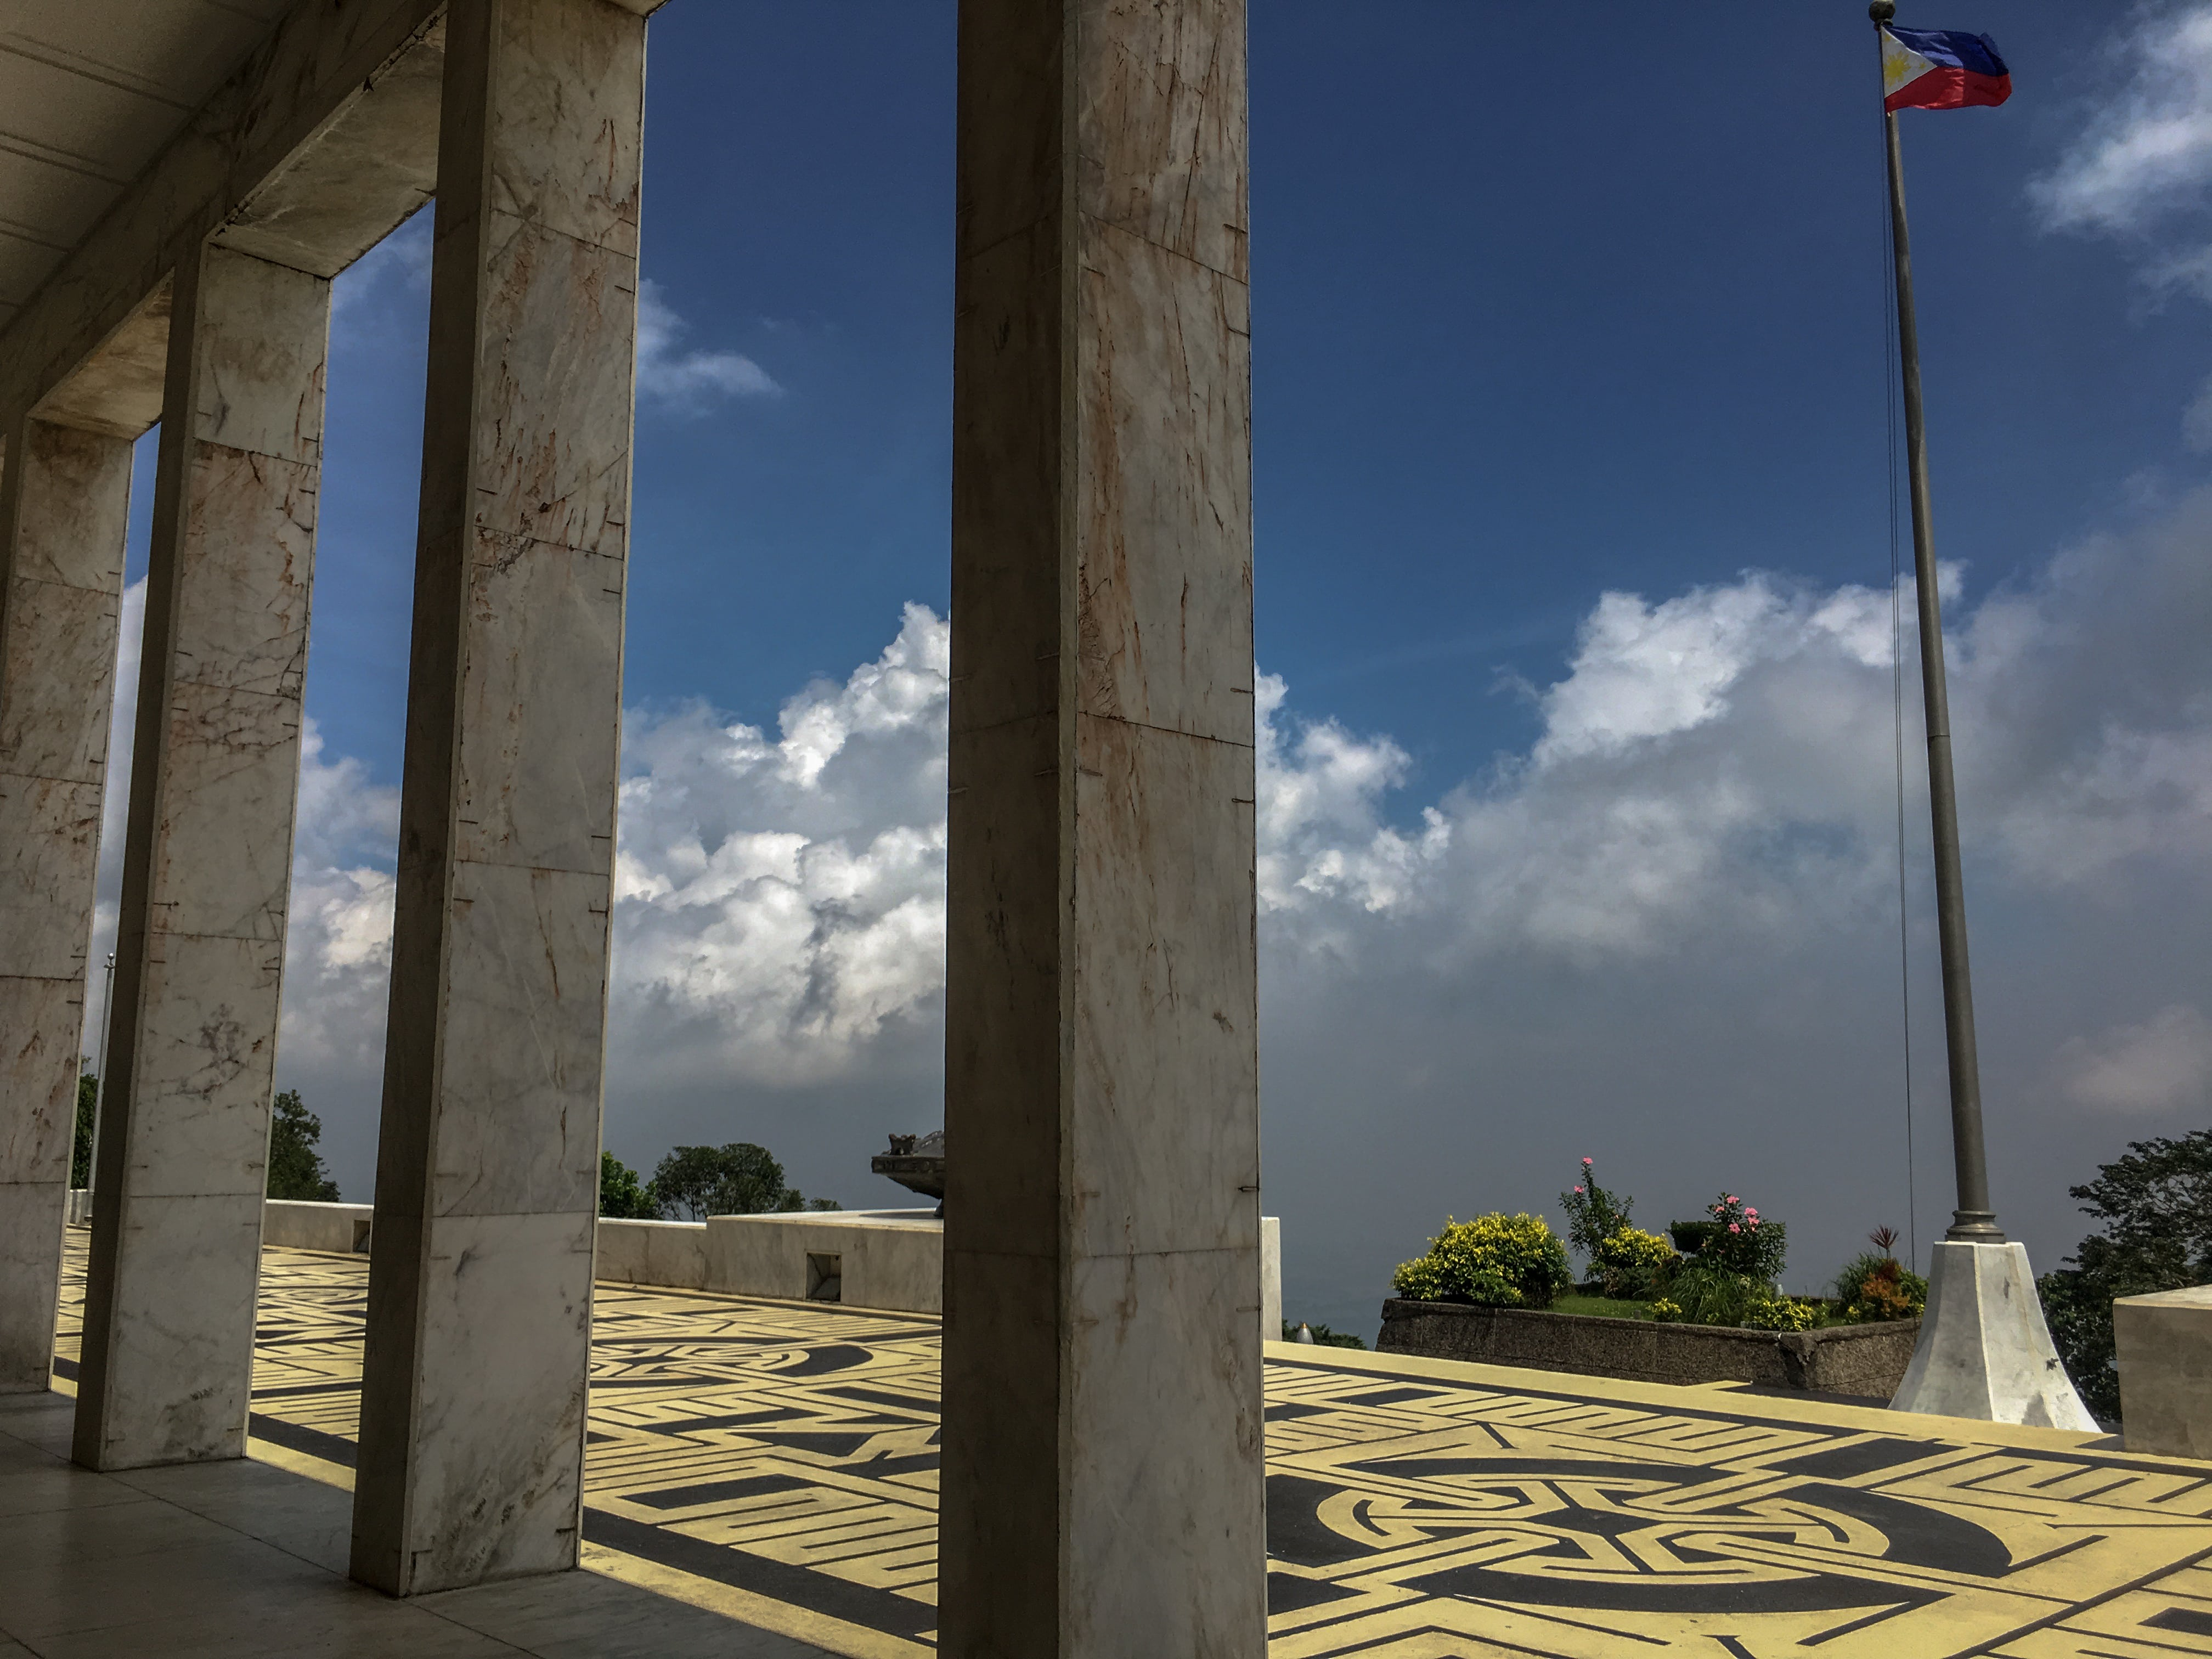 philippine flag at collonade at shrine of valor at mount samat in bataan